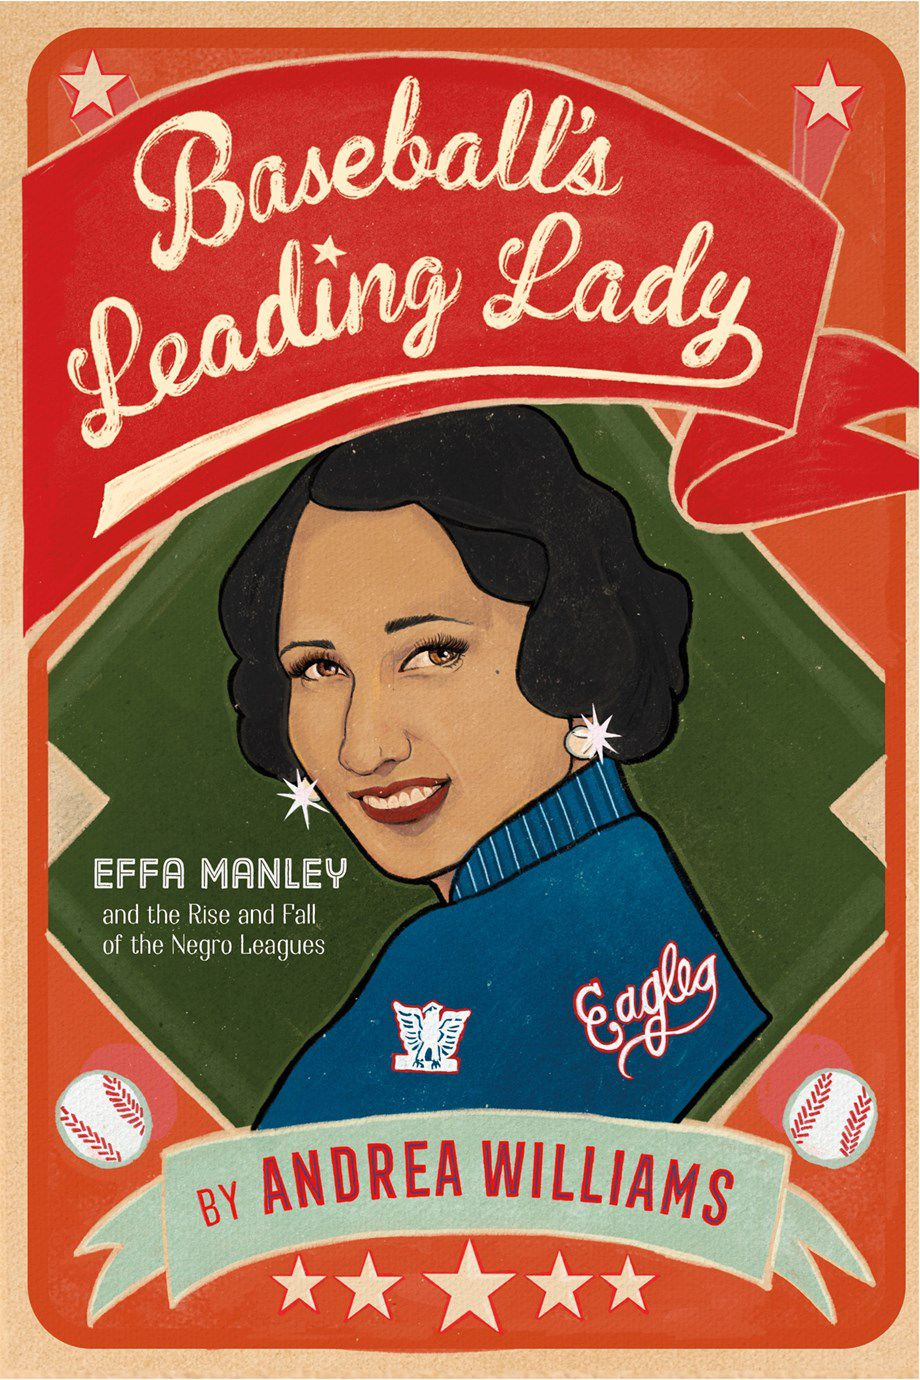 Baseball's Leading Lady review